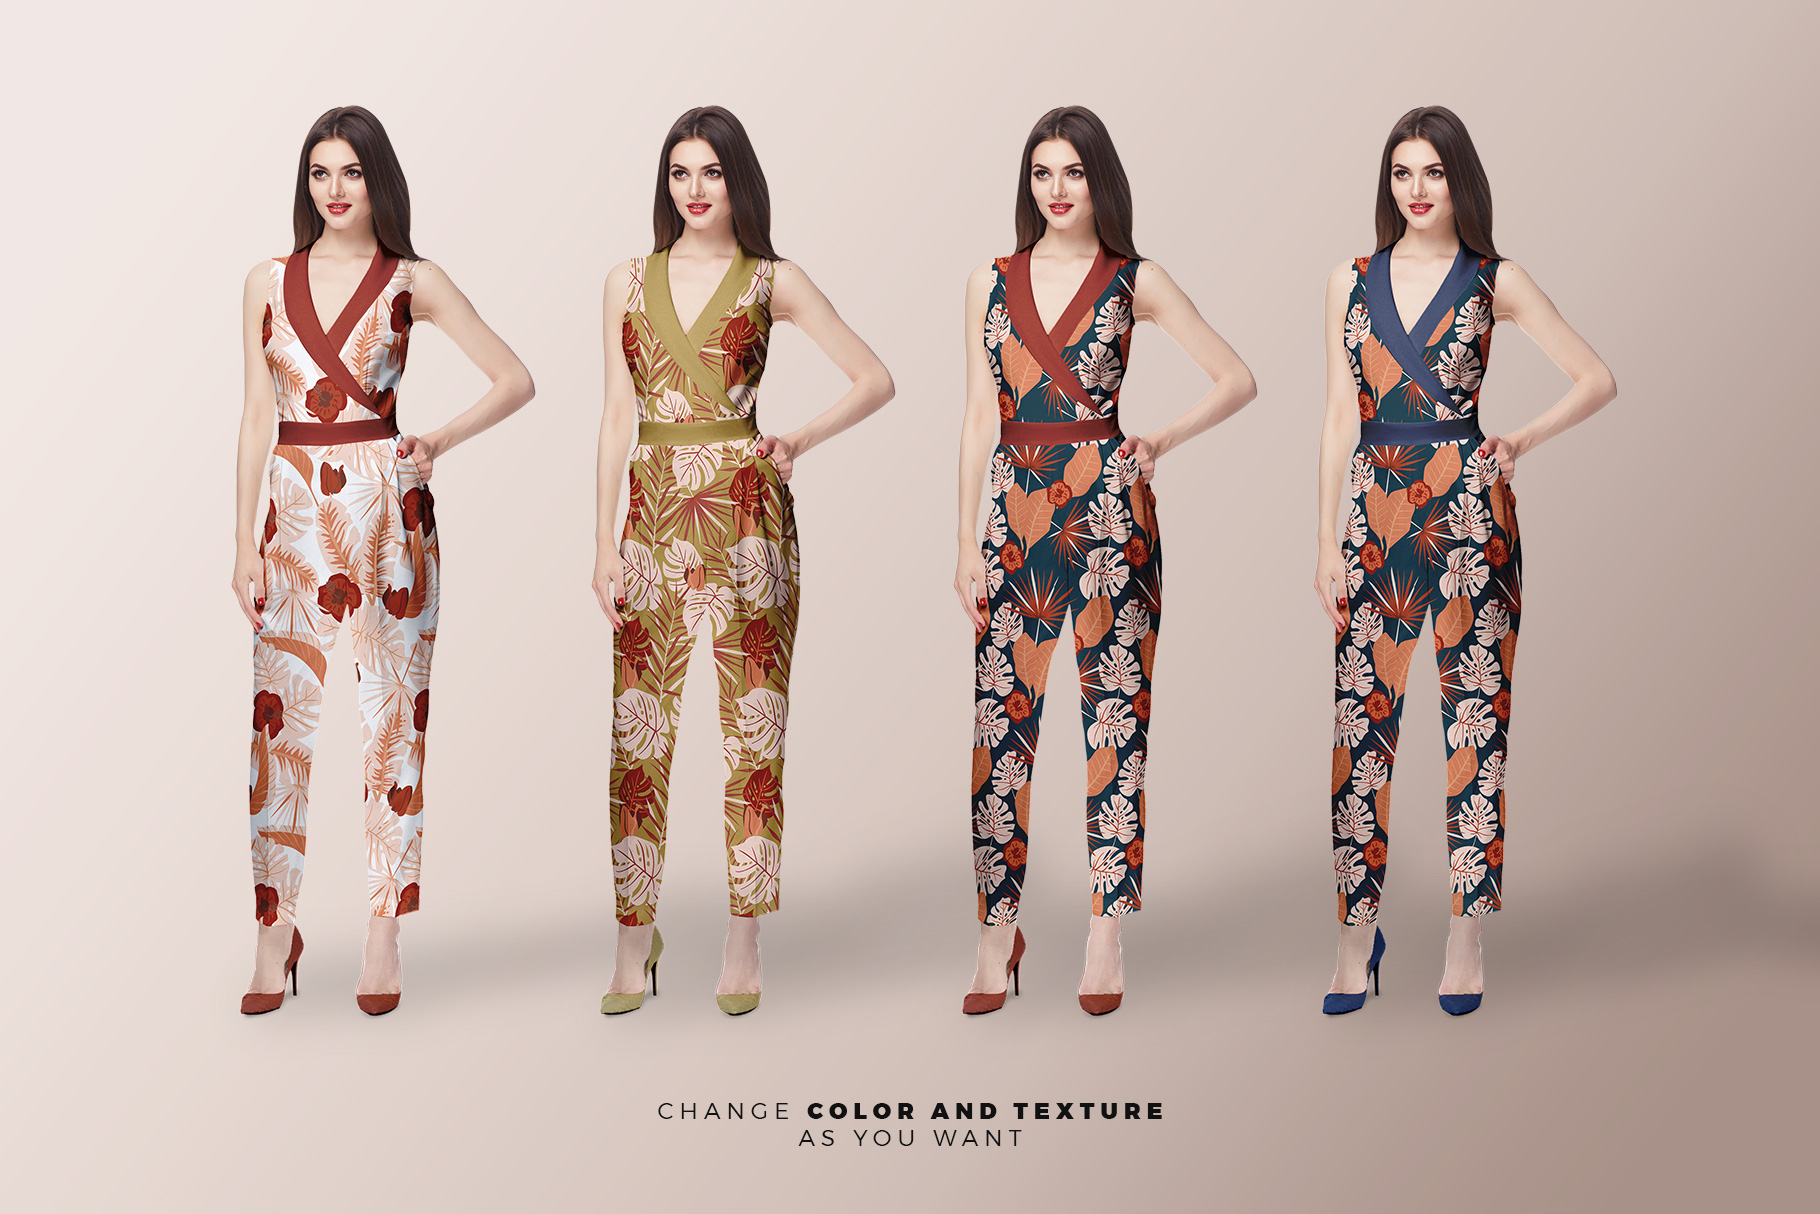 variations of the women's jumpsuit mockup